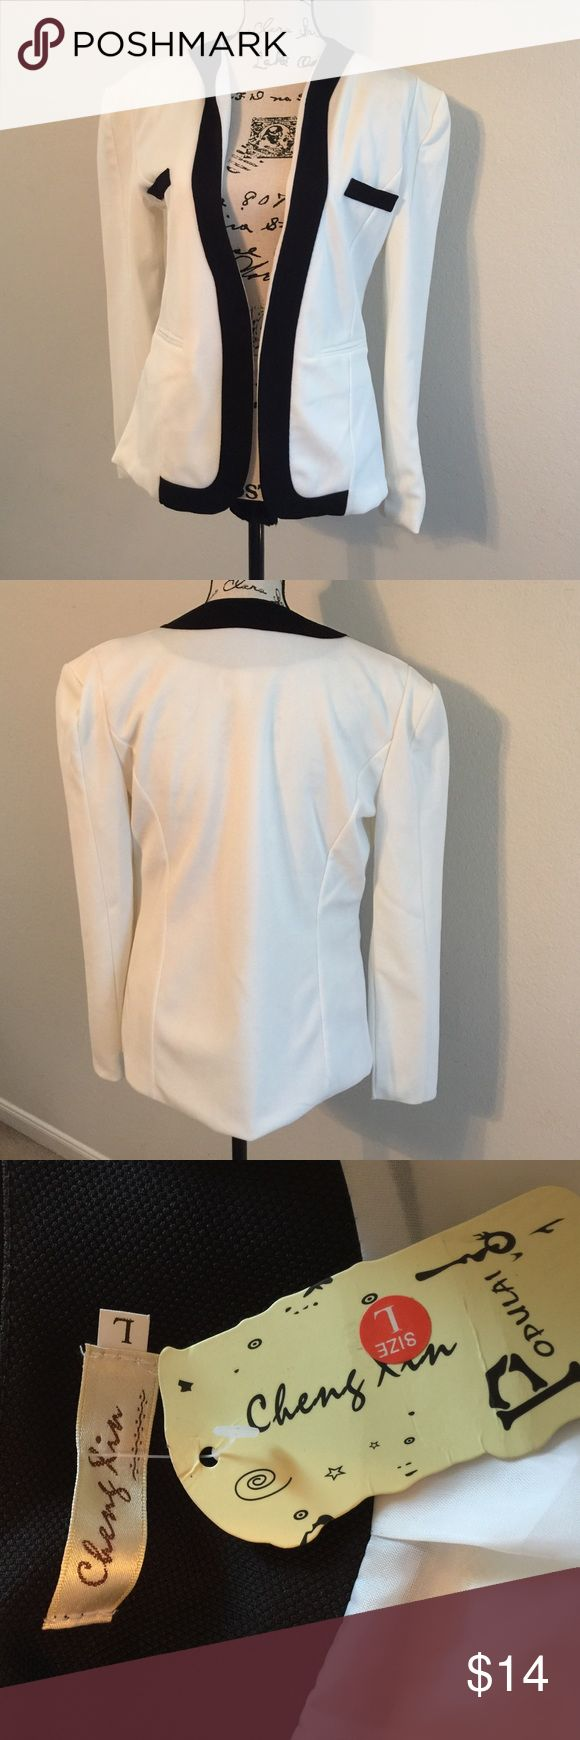 Light dressy jacket Light weight white with black accents jacket. It's a small. Jackets & Coats Jean Jackets